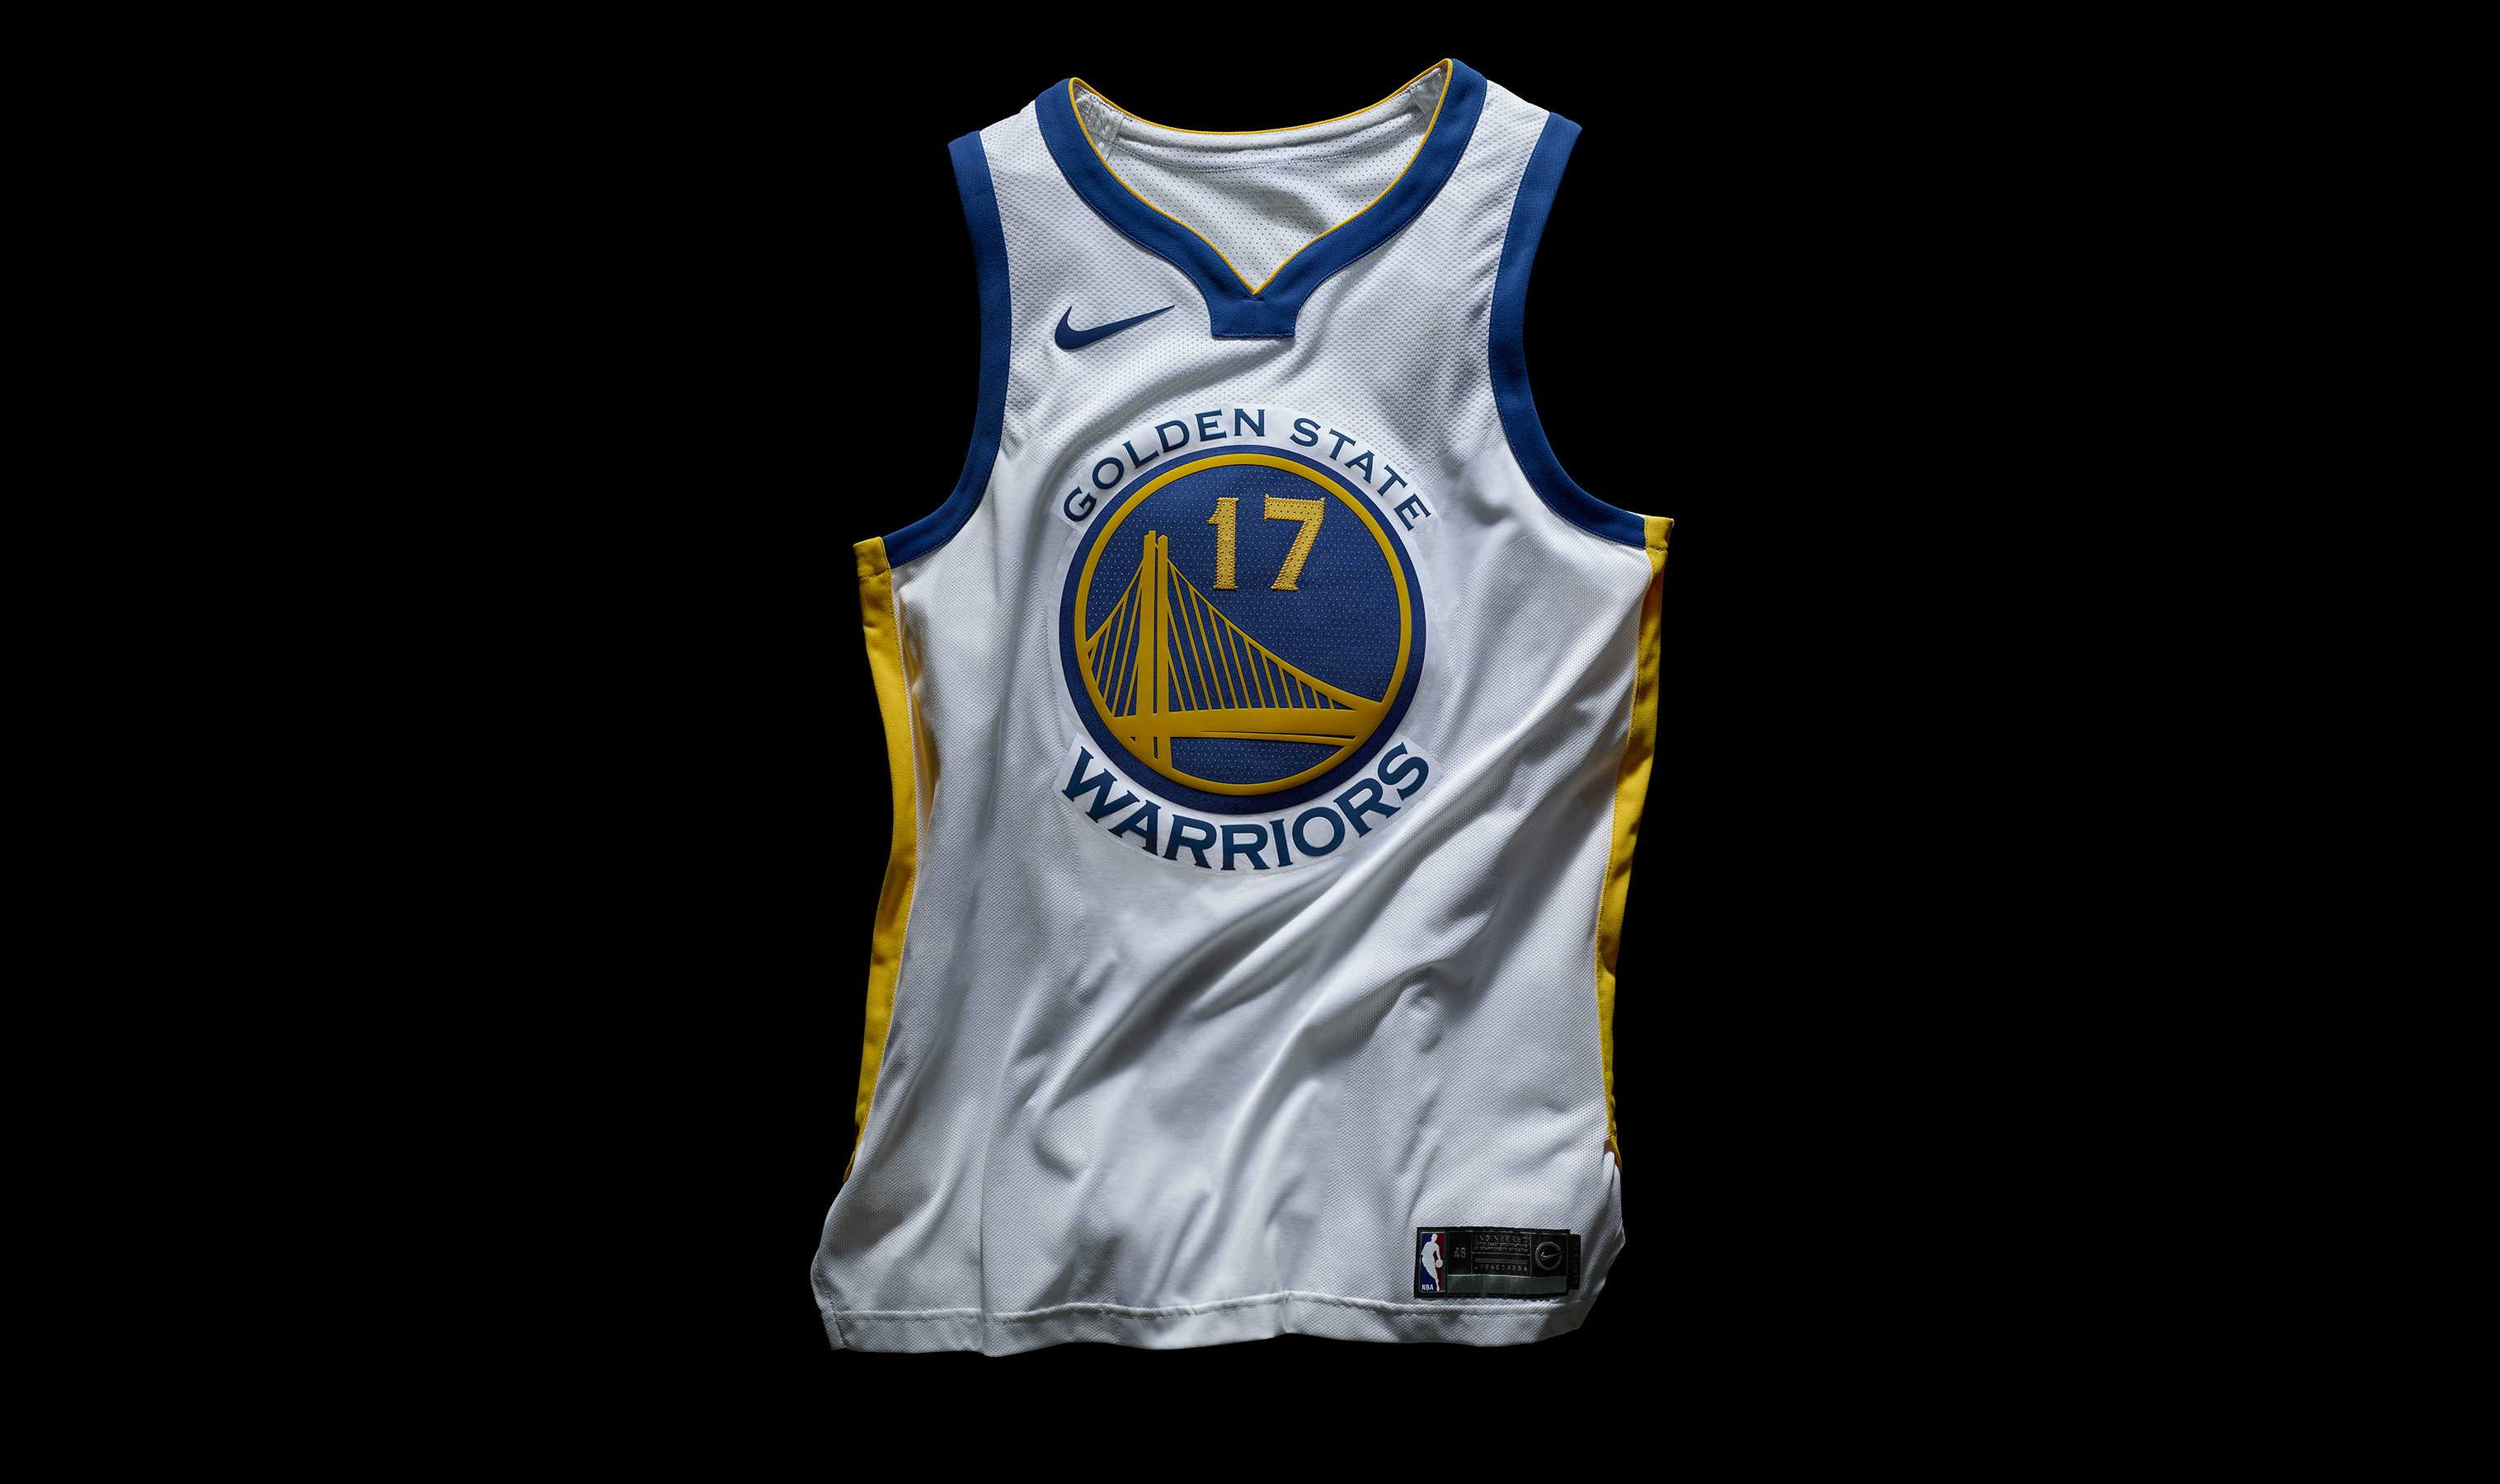 ad091fe6939 Each of Nike s new NBA uniforms is made with the equivalent of 20 recycled  plastic bottles